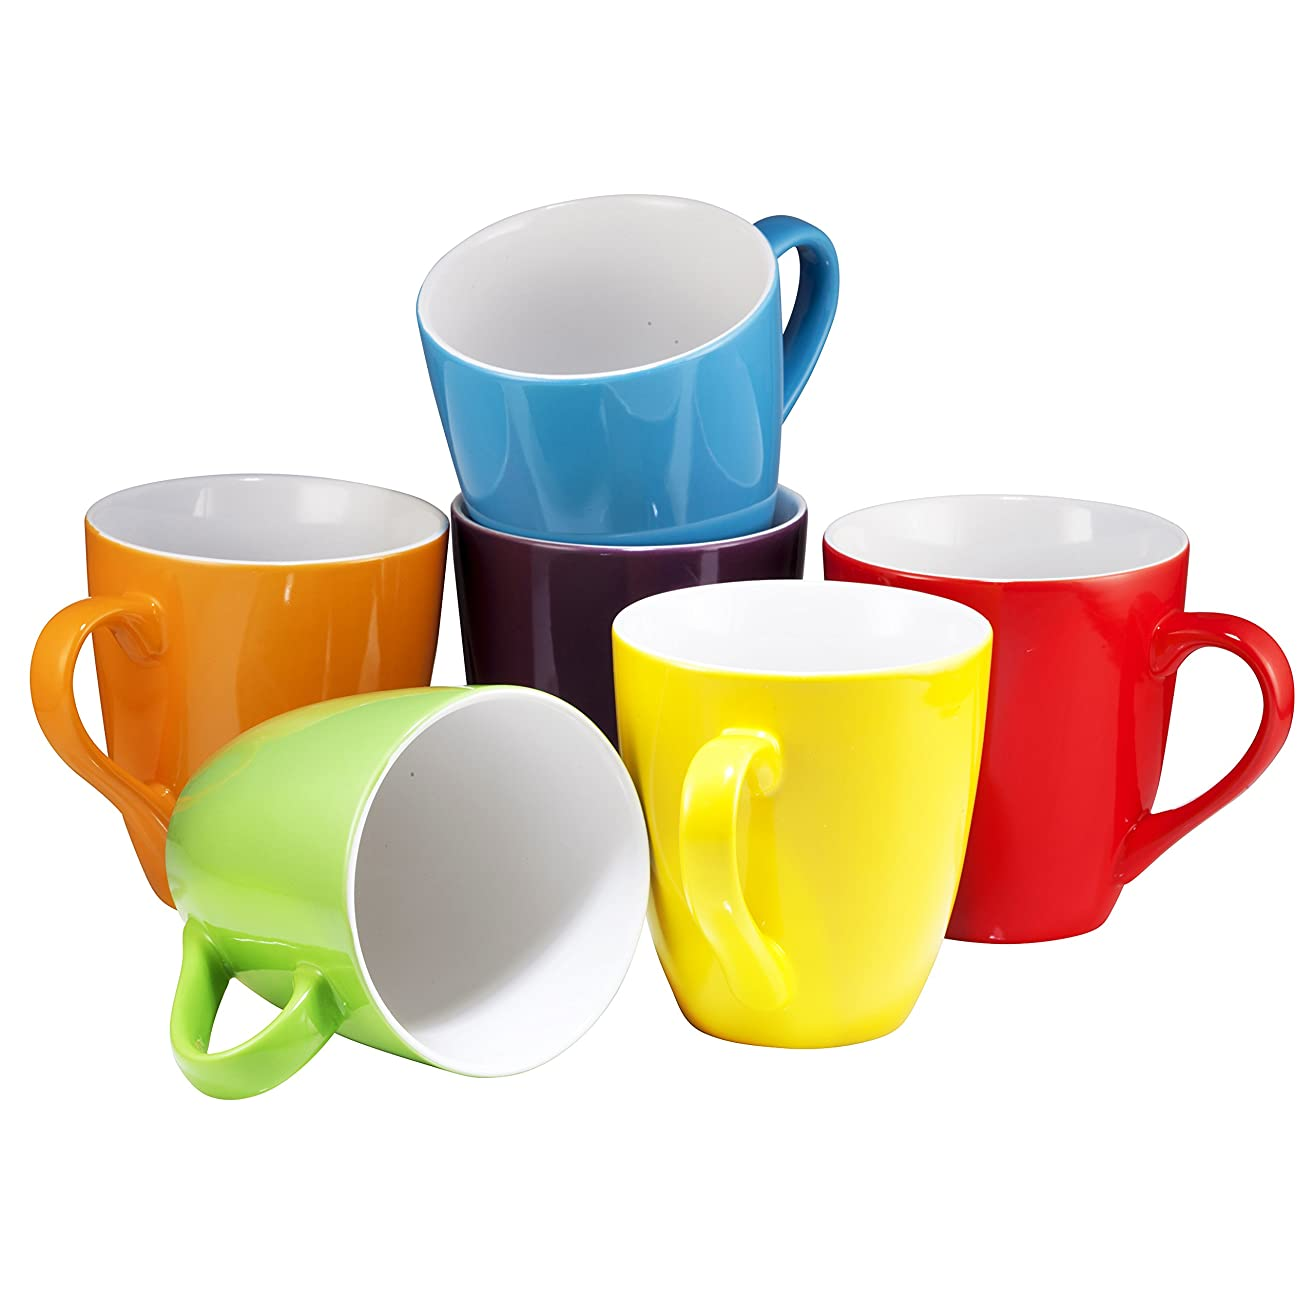 Coffee Mug Set Set of 6 Large-sized 16 Ounce Ceramic Coffee Mugs Restaurant Coffee Mugs By Bruntmor (Multi-Color)